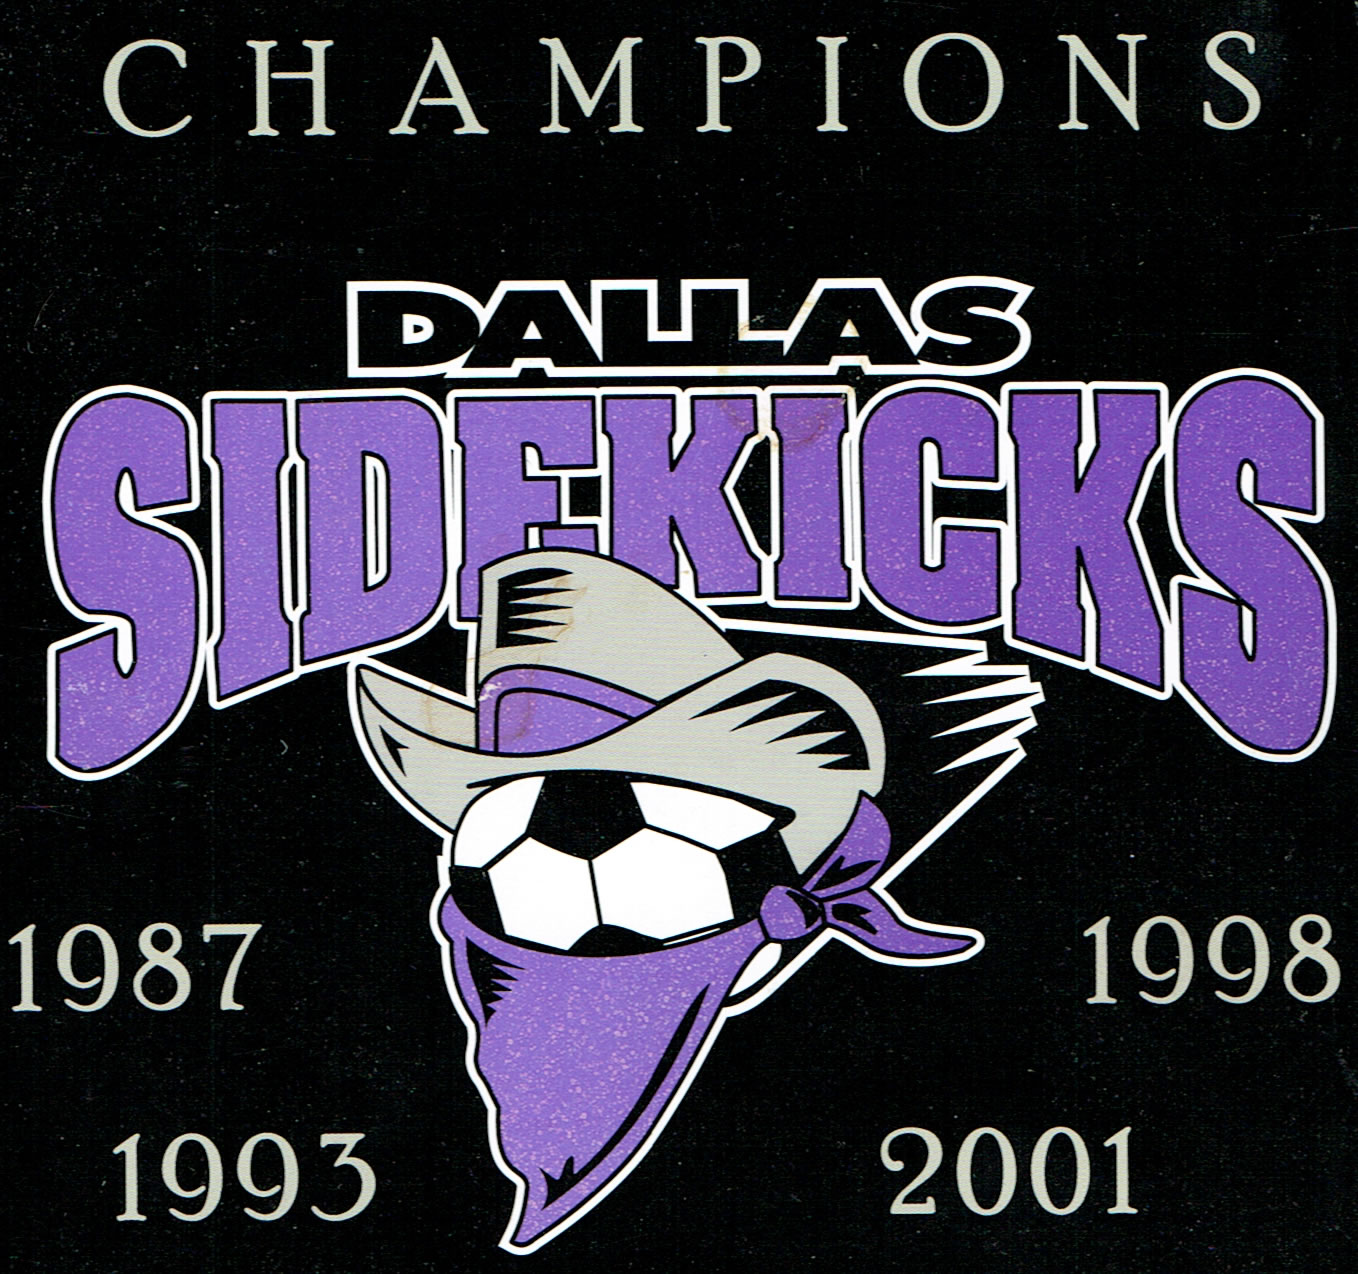 Member of the 1993, 1998, and 2001 Championshio teams